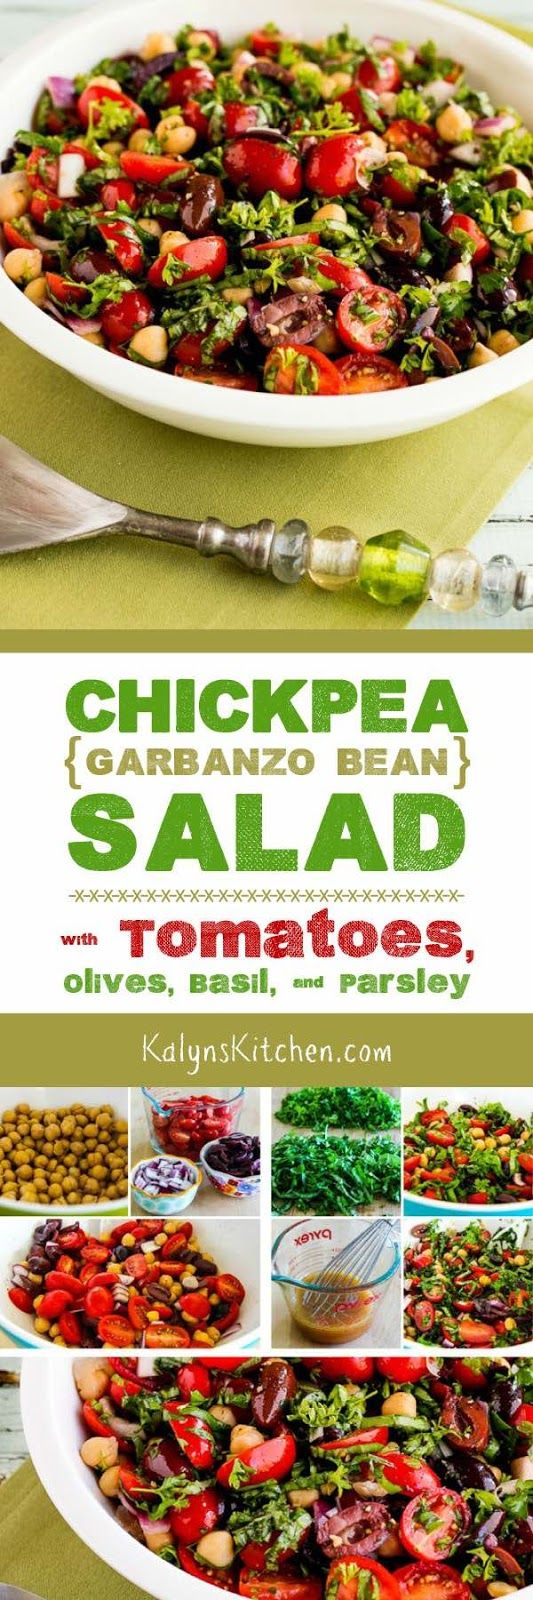 Chickpea (Garbanzo Bean) Salad with Tomatoes, Olives, Basil, and ...